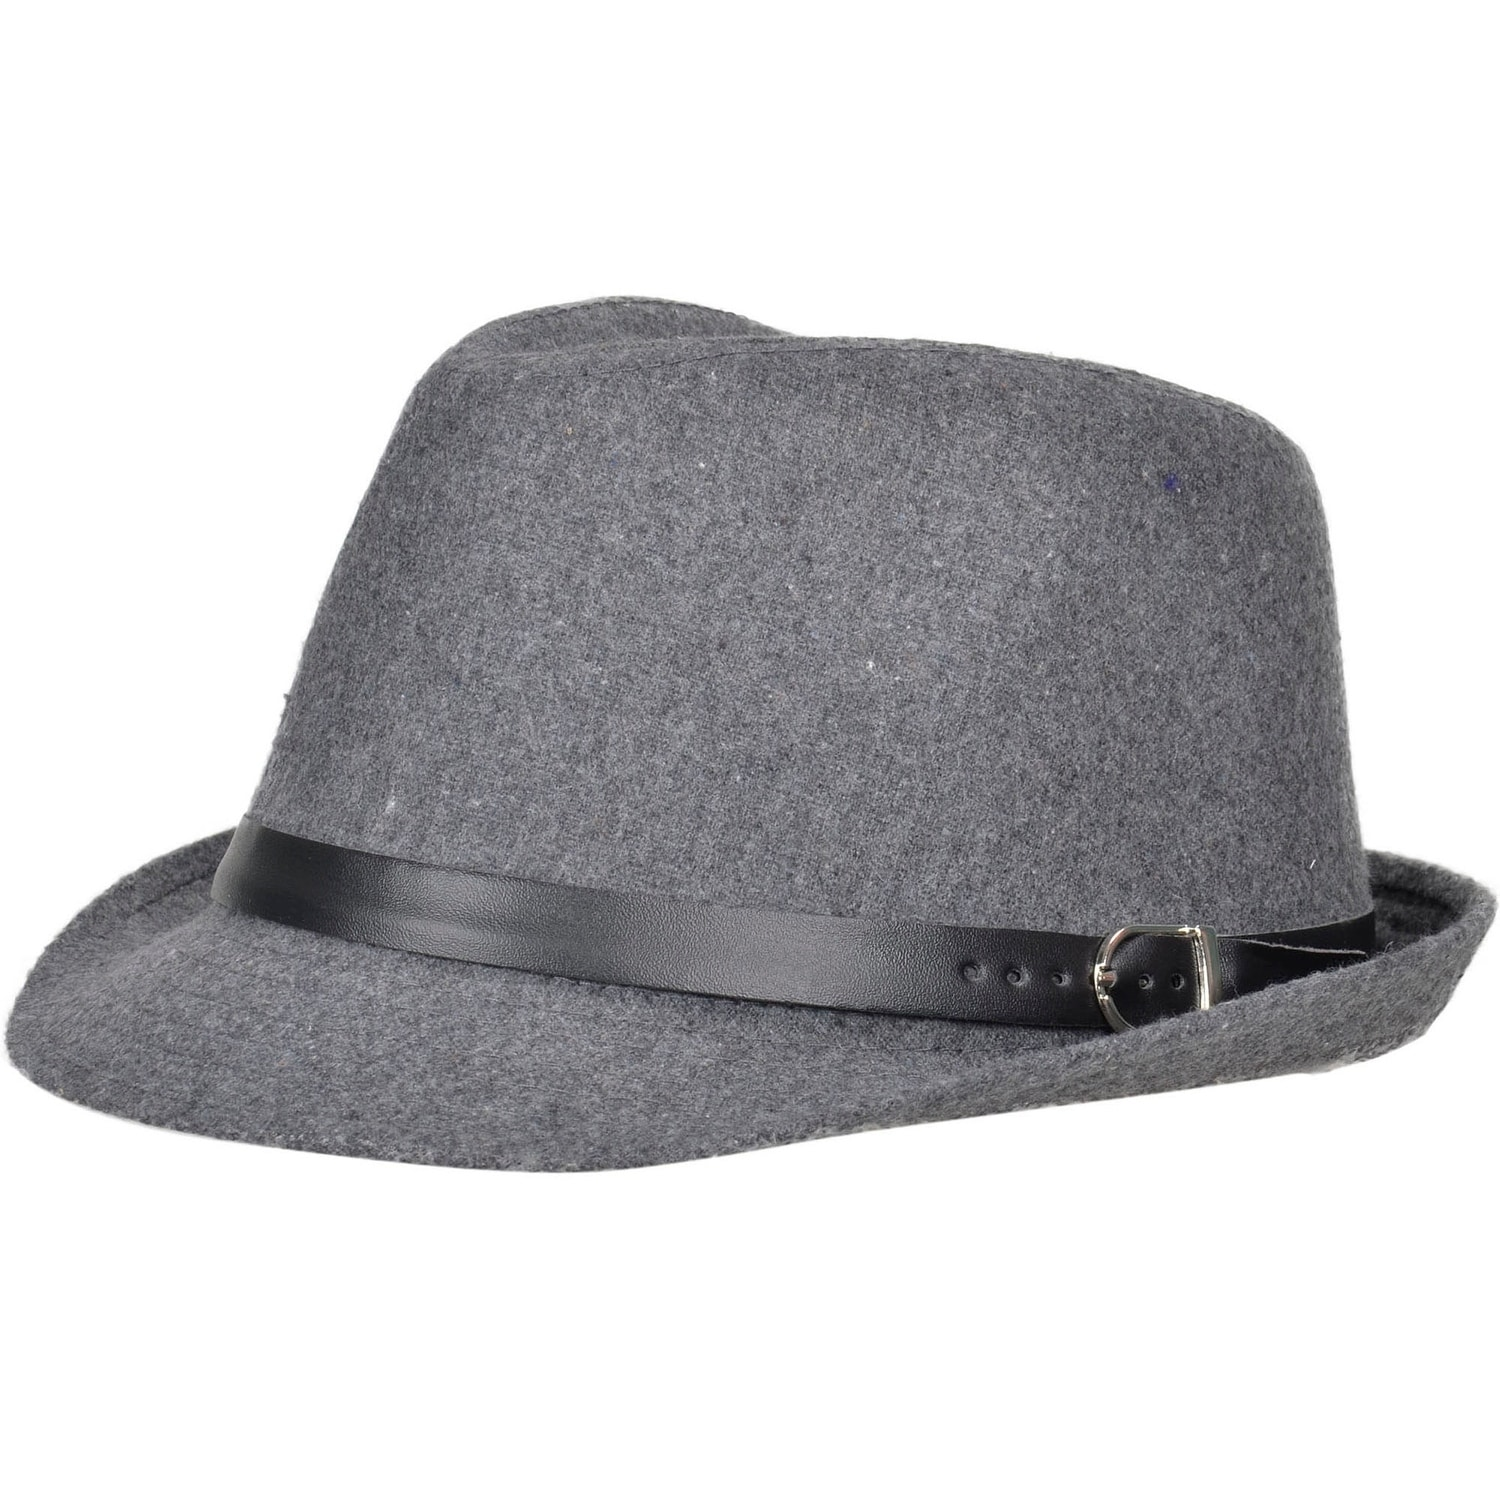 5d007d4b3 Unisex Structured Gangster Trilby Wool Fedora Hat